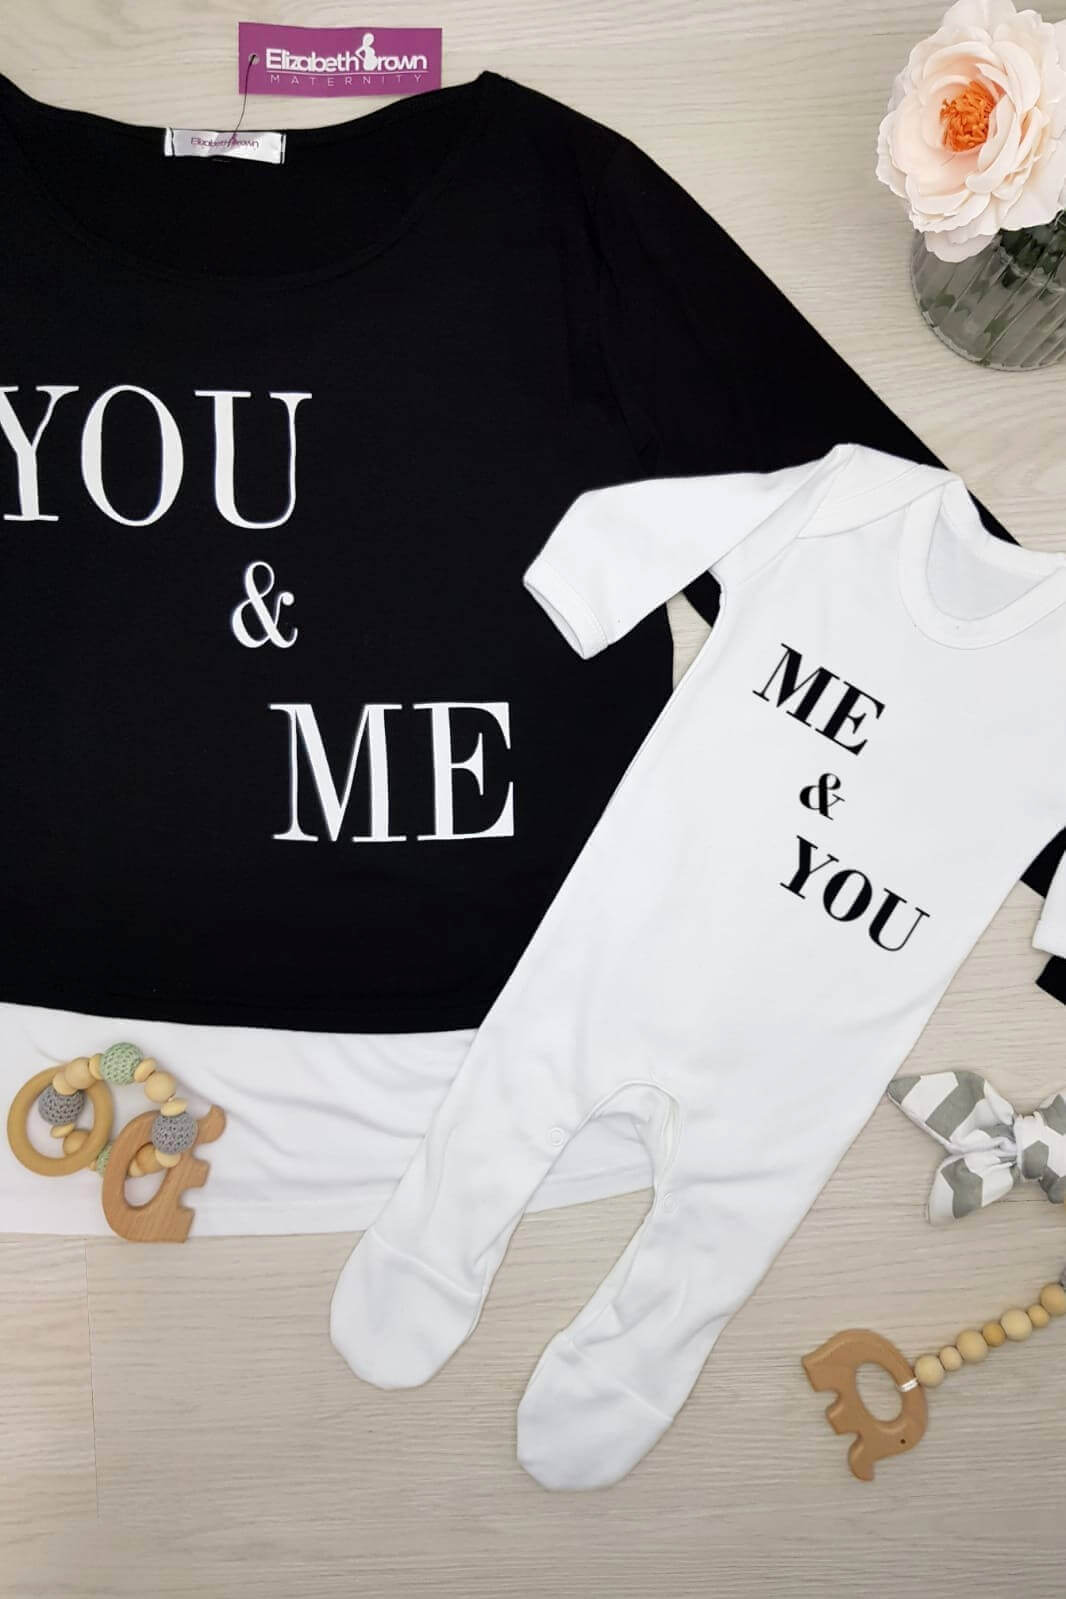 You&Me and Me&You Mum and Baby Set